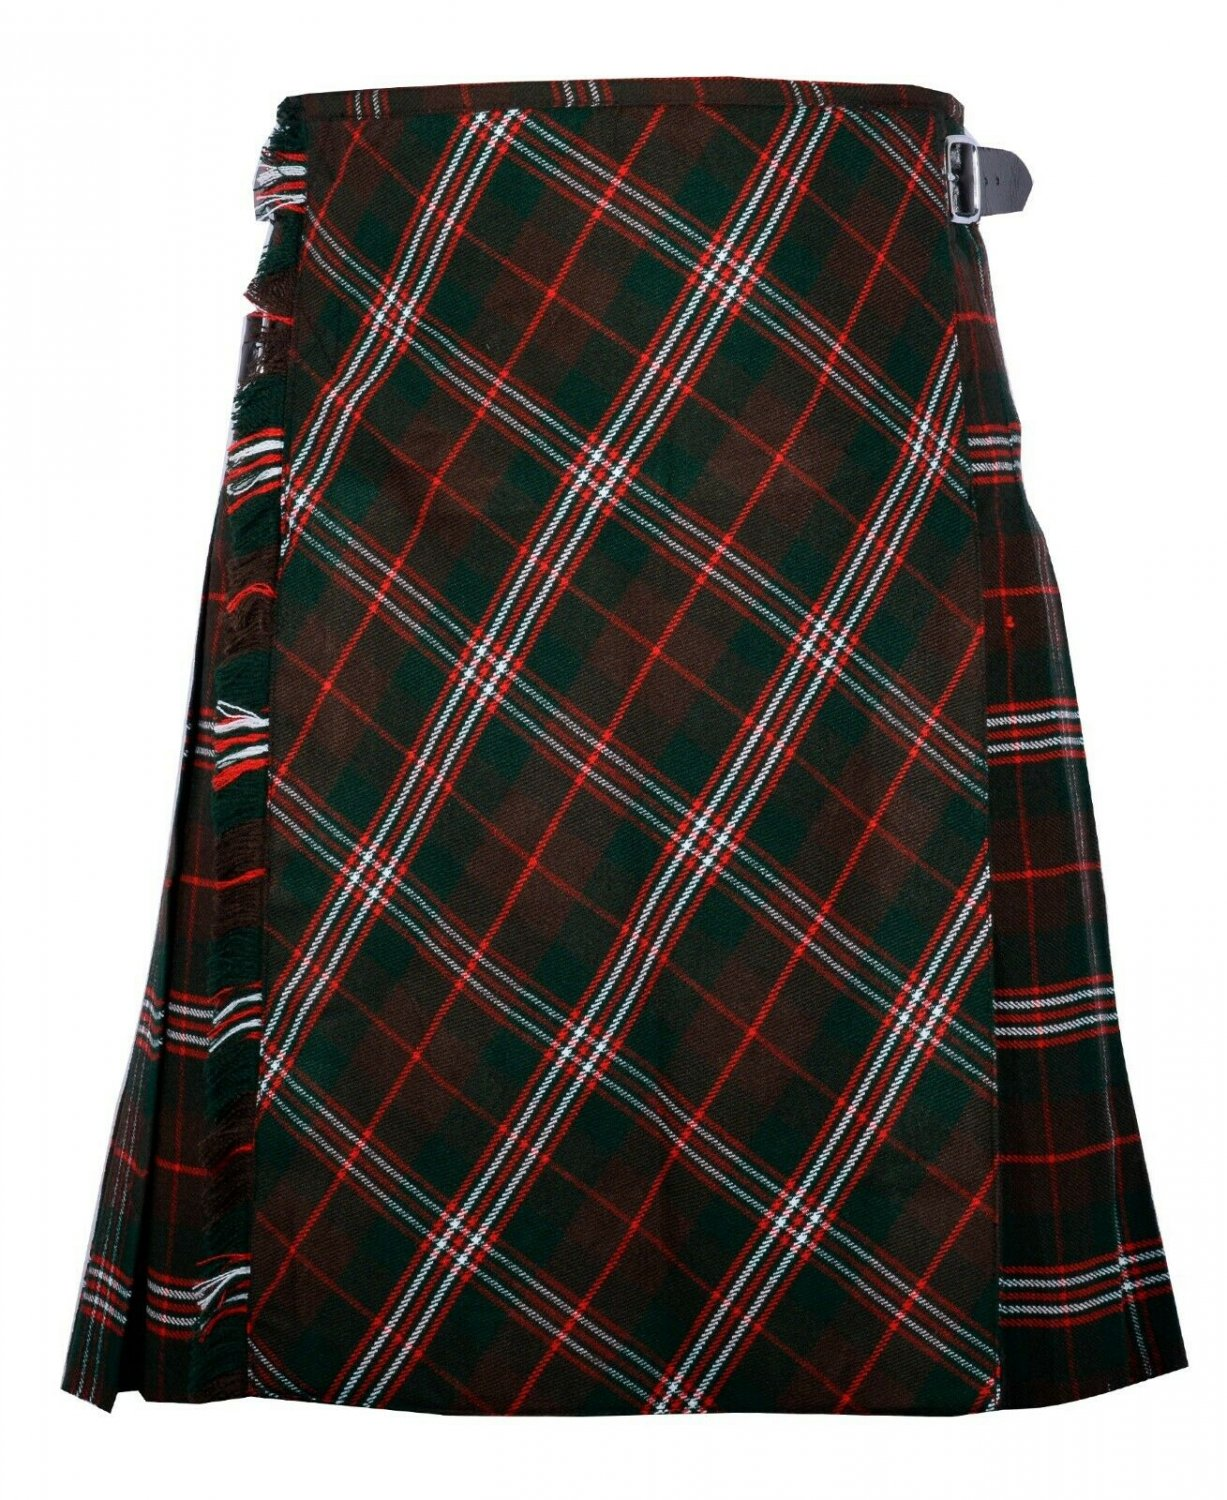 52 size Scott Hinting tartan Bias Apron Traditional 5 Yard Scottish Kilt for Men